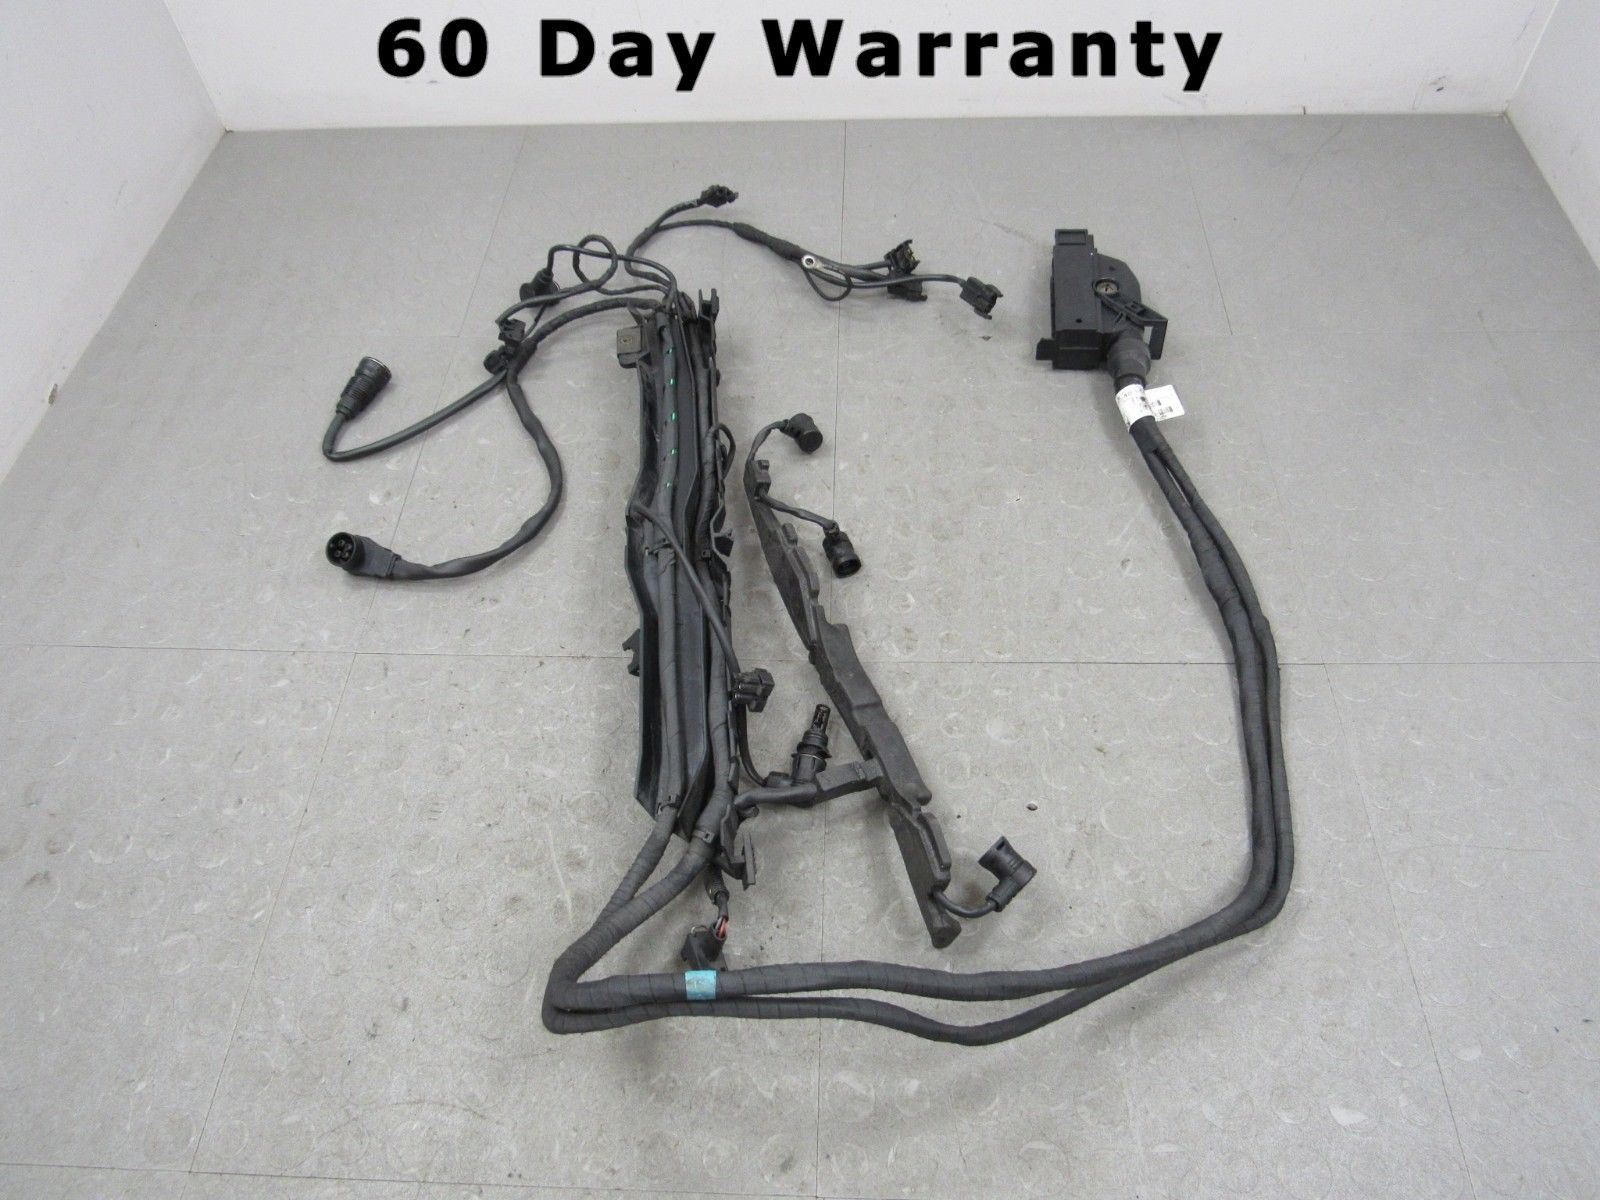 hight resolution of 94 95 mercedes sl320 s320 2007 update engine wire wiring harness 150 540 69 32 a